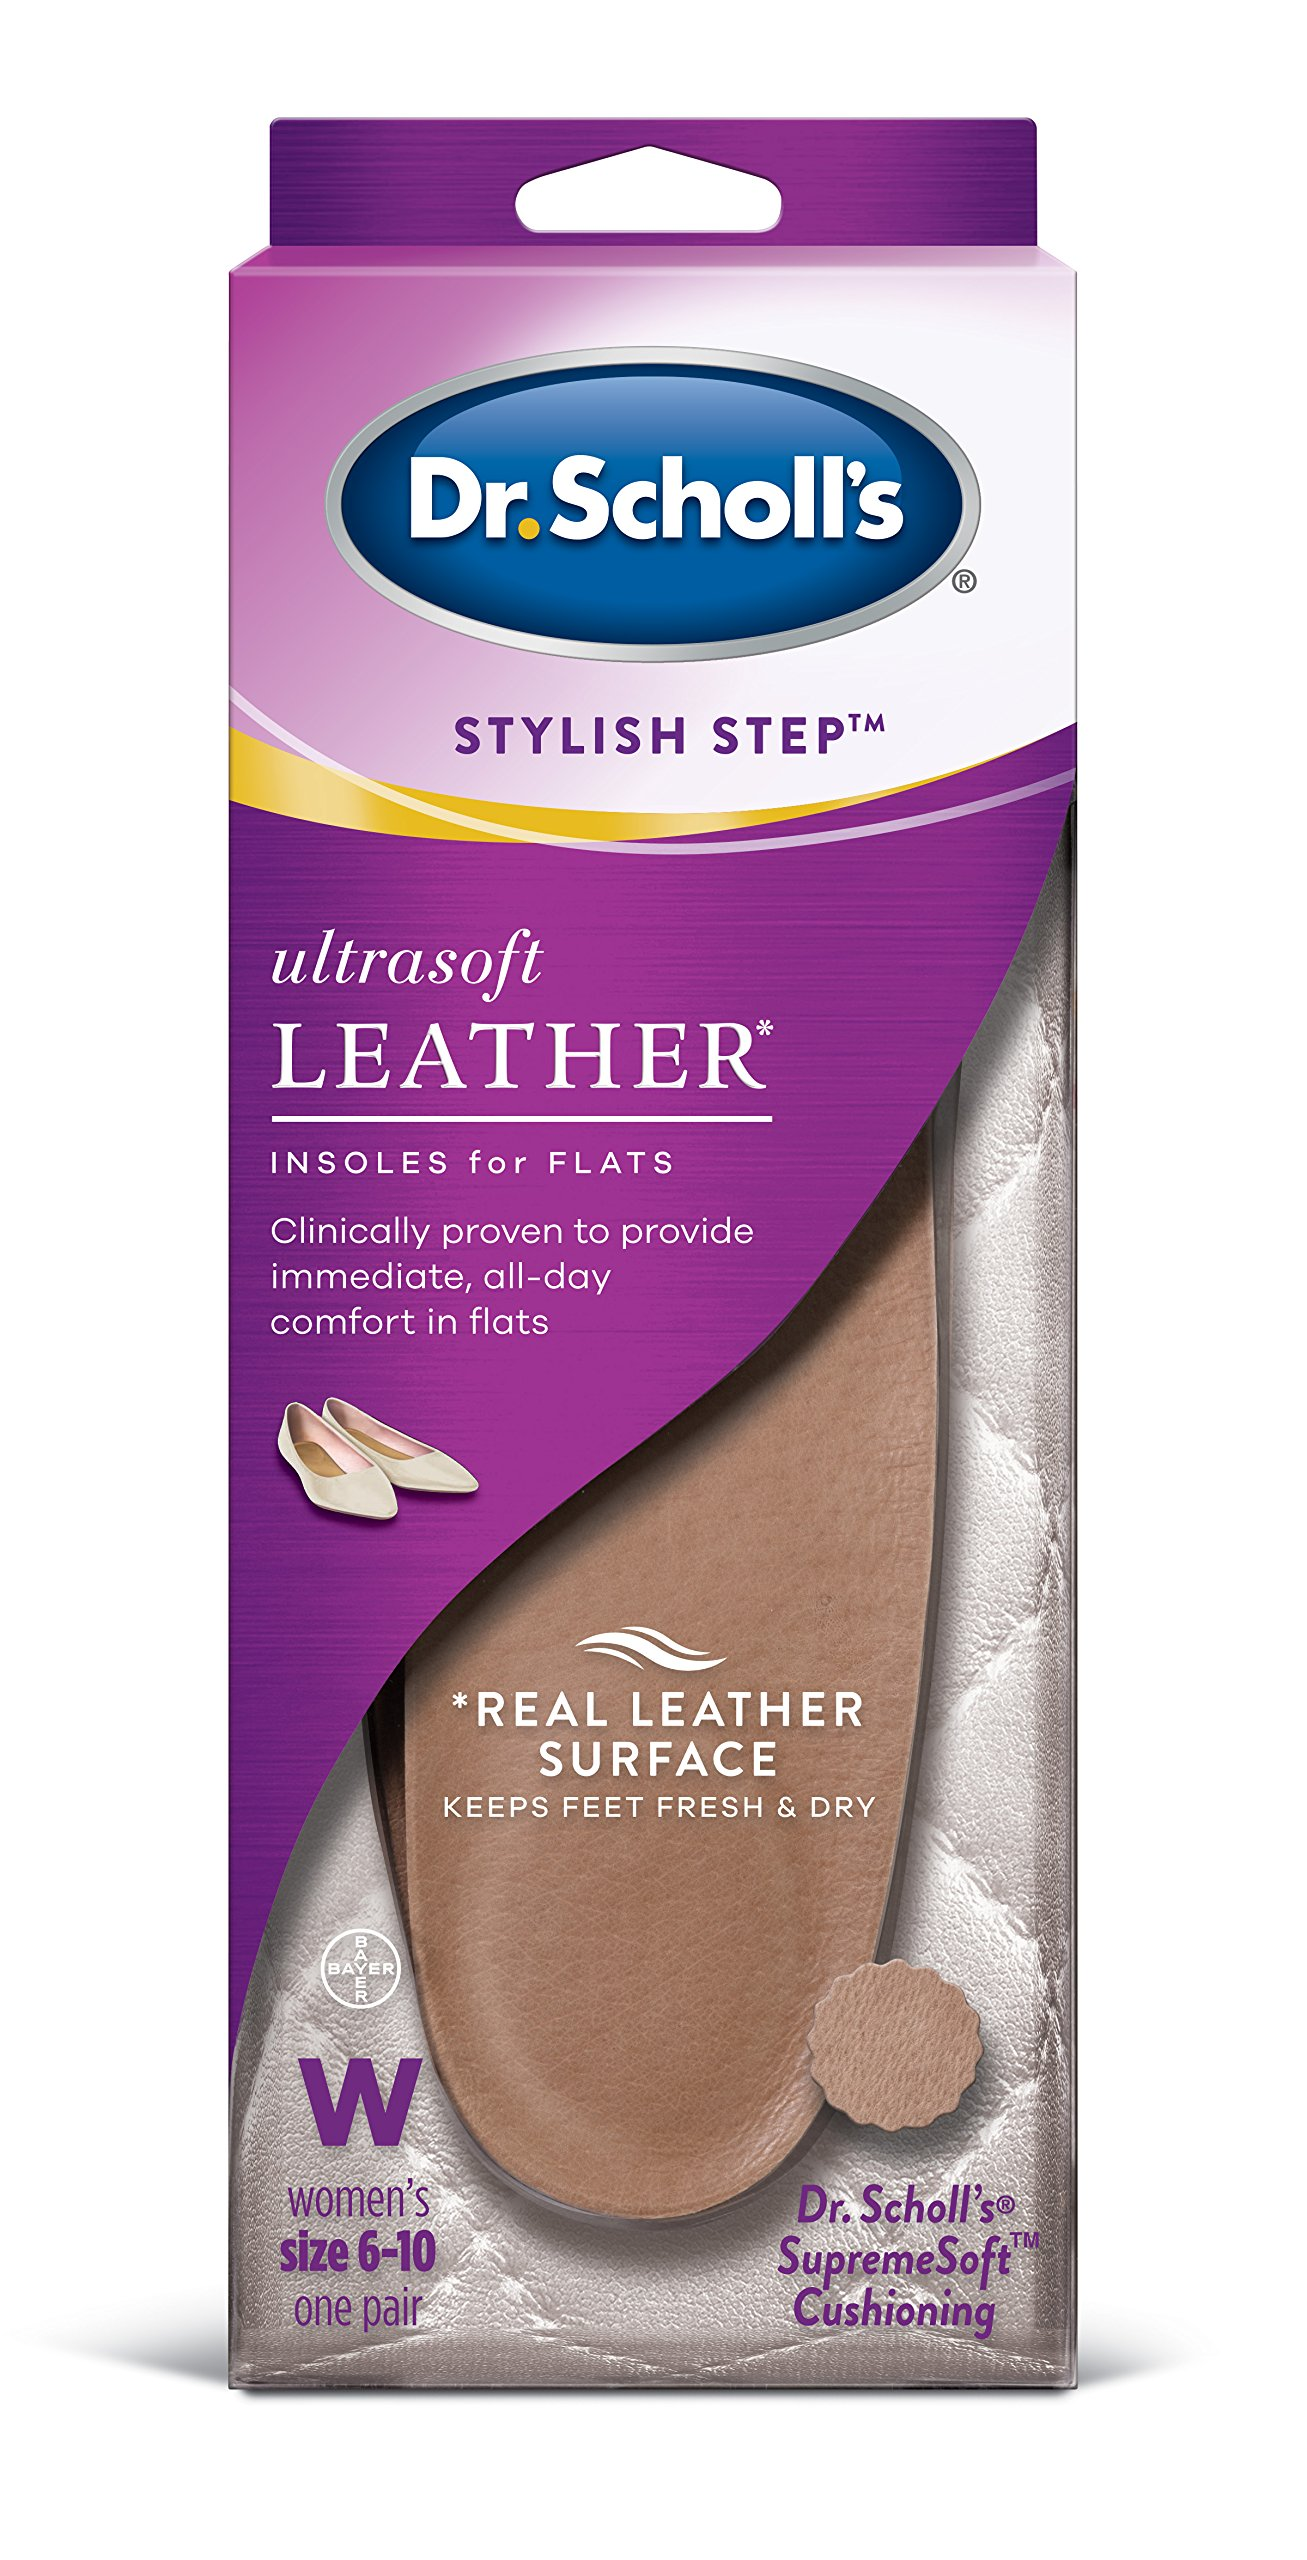 ac49eb771a71 Amazon.com  Dr. Scholl s Ultrasoft Leather Insoles for High Heels ...